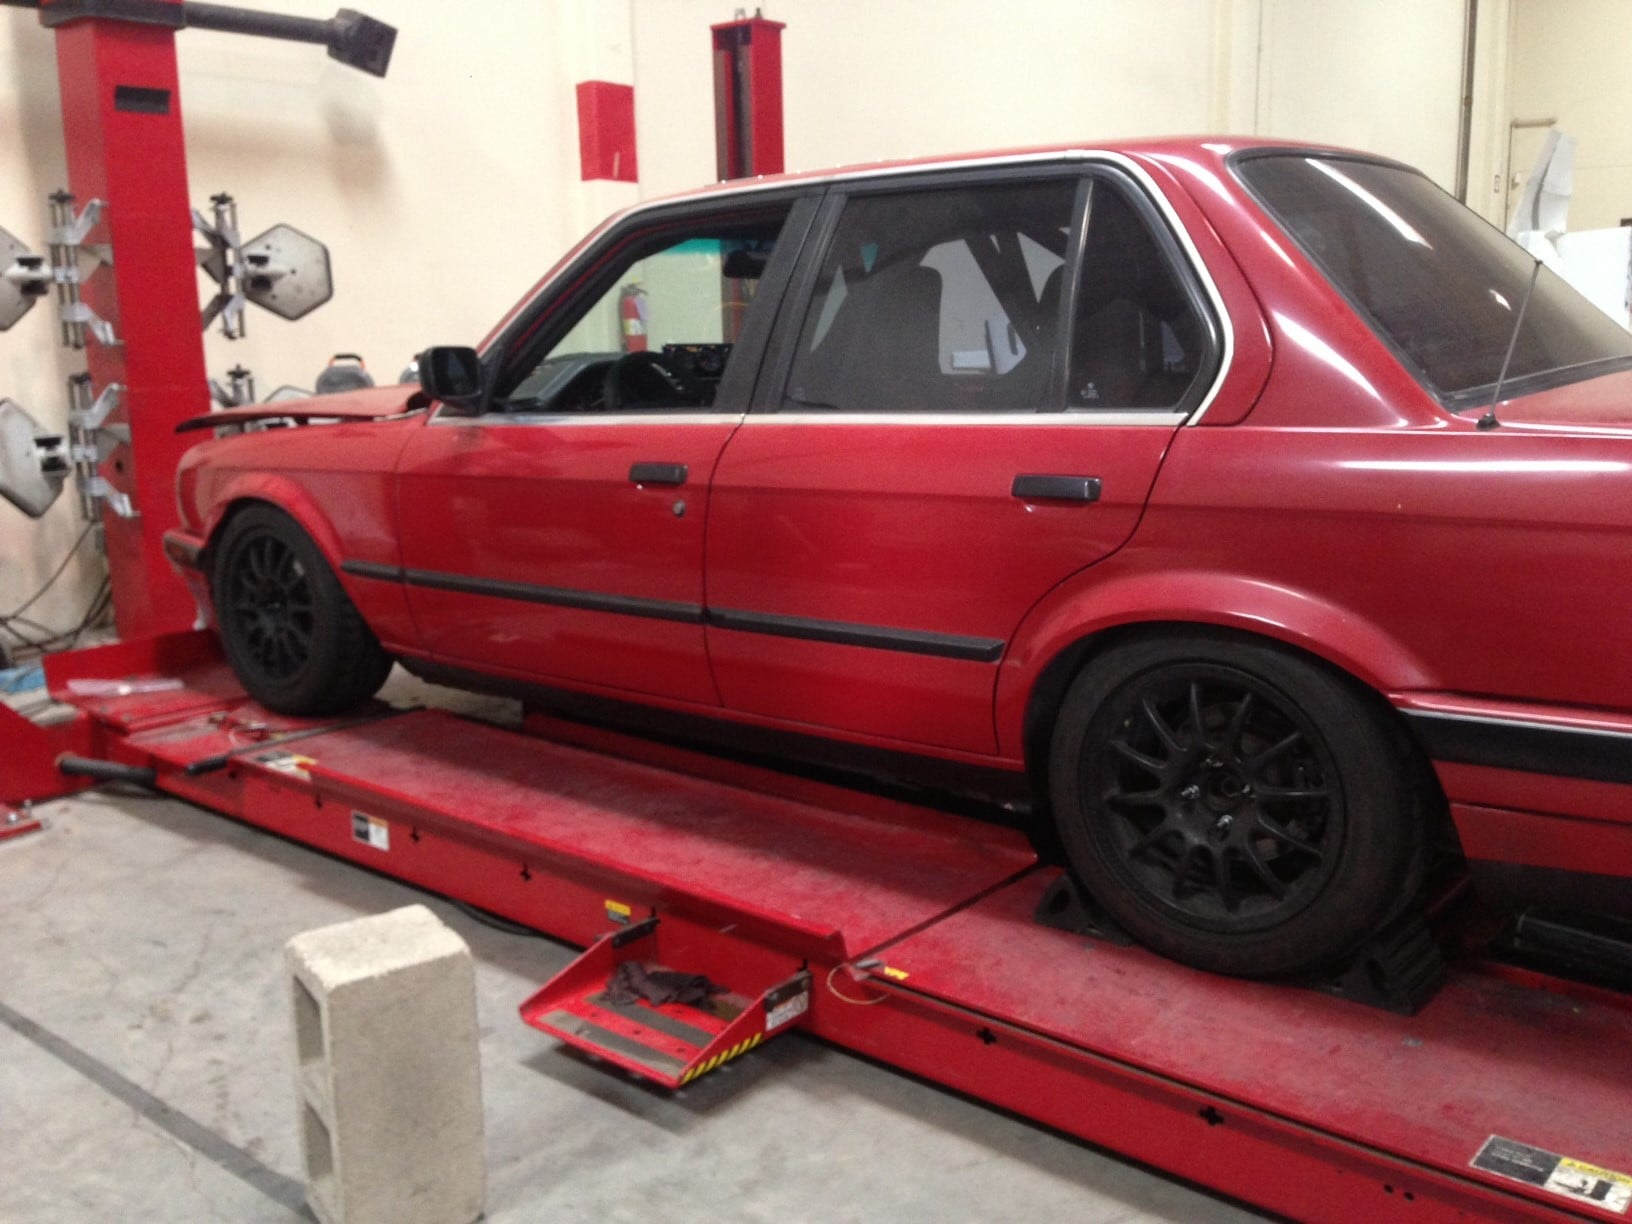 E30 Bmw Rear Subframe Modification For Toe And Camber